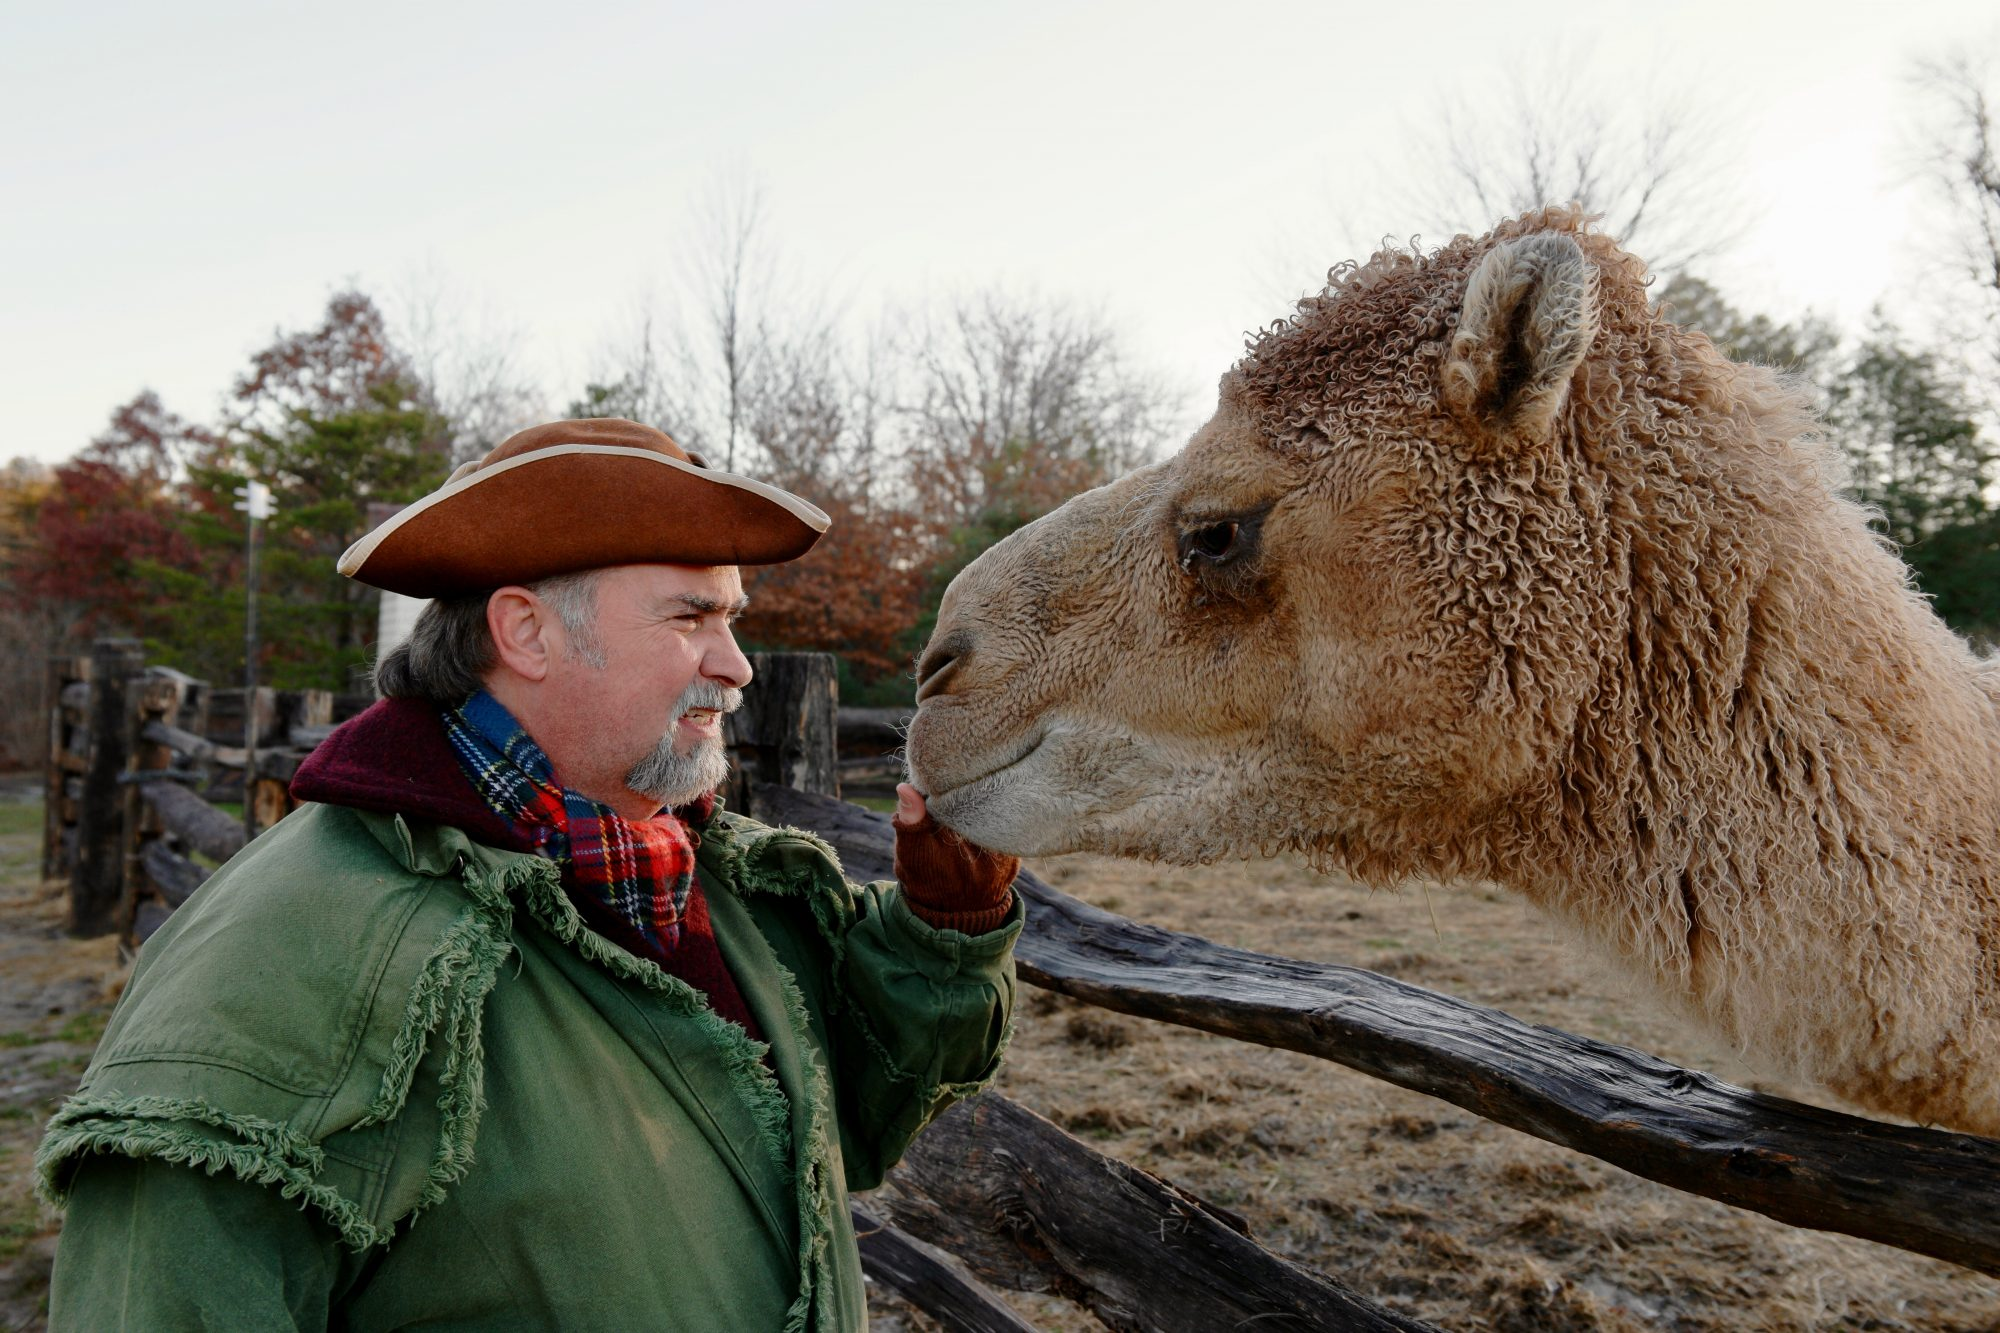 Aladdin the Mount Vernon Camel